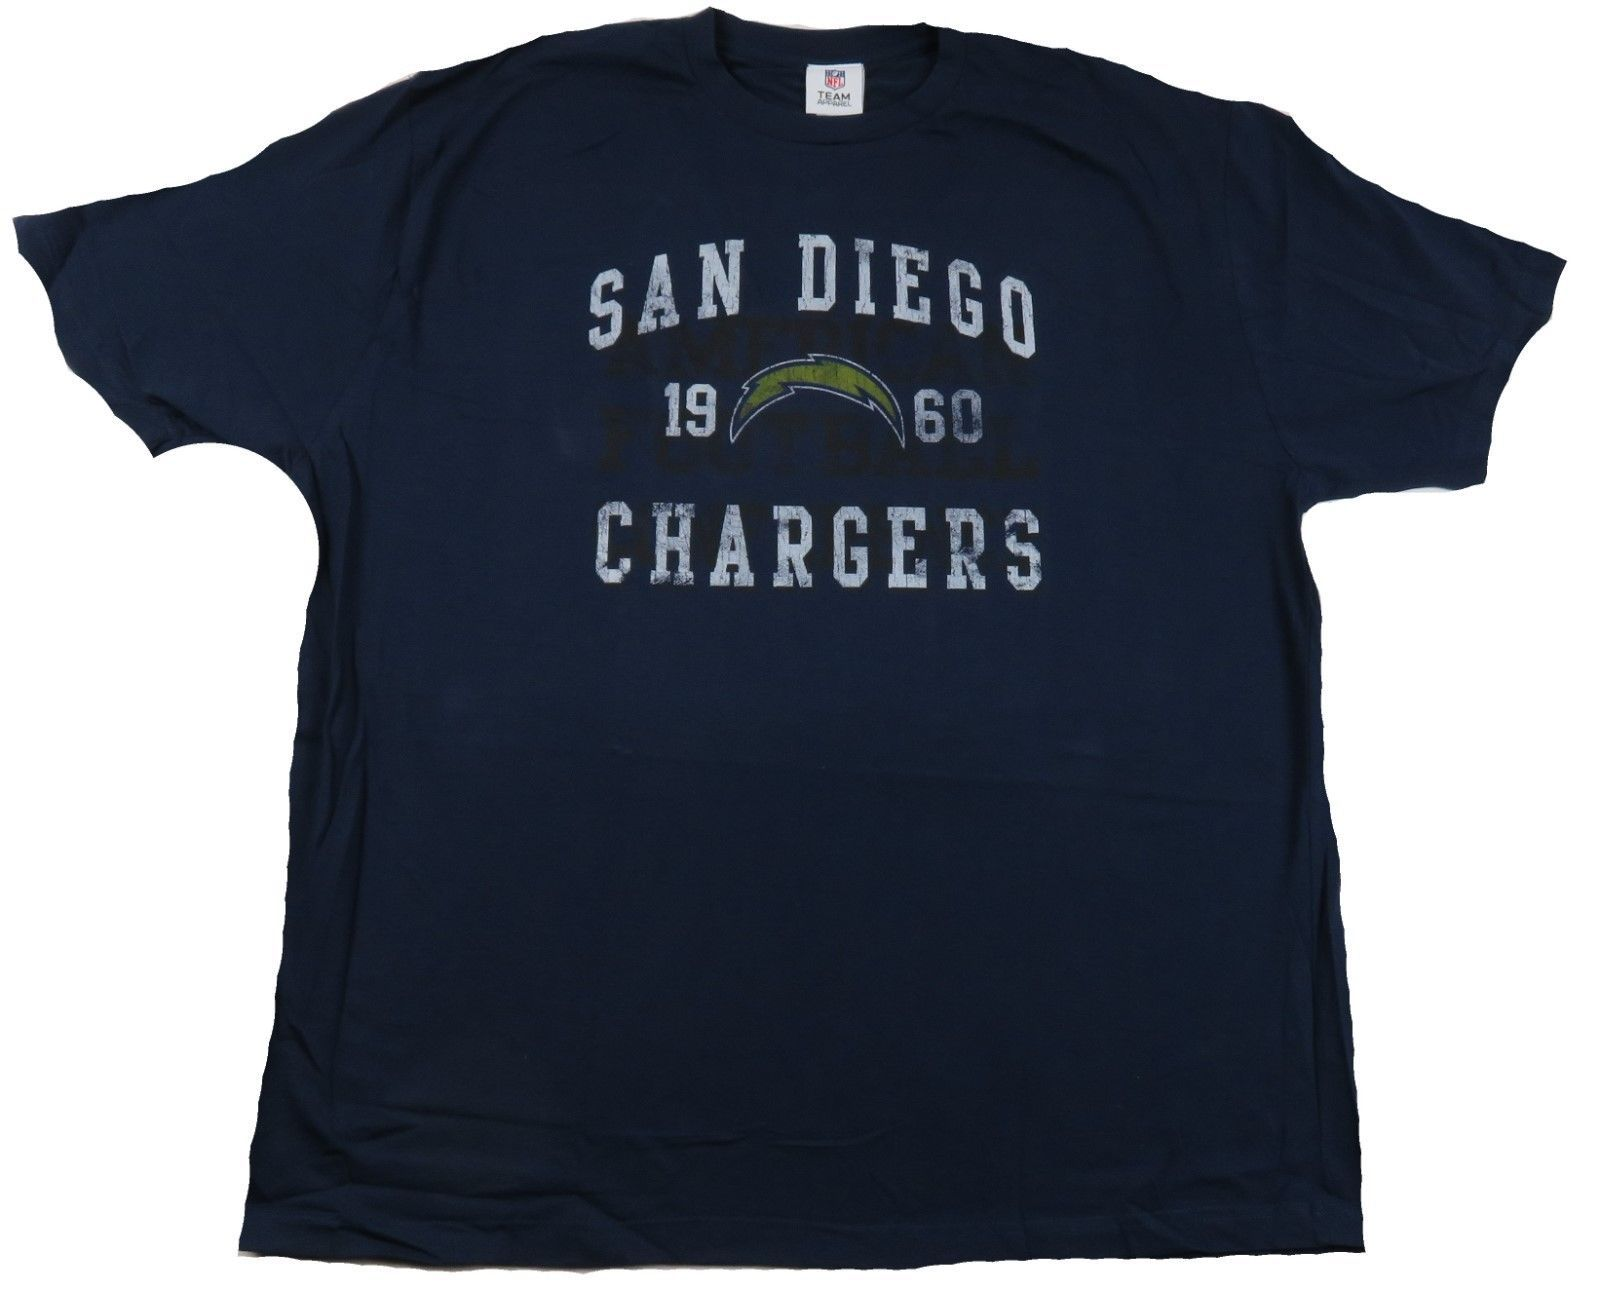 San Diego Chargers Shirt Men's NFL Vintage Est. Year Tee Football T-Shirt NEW